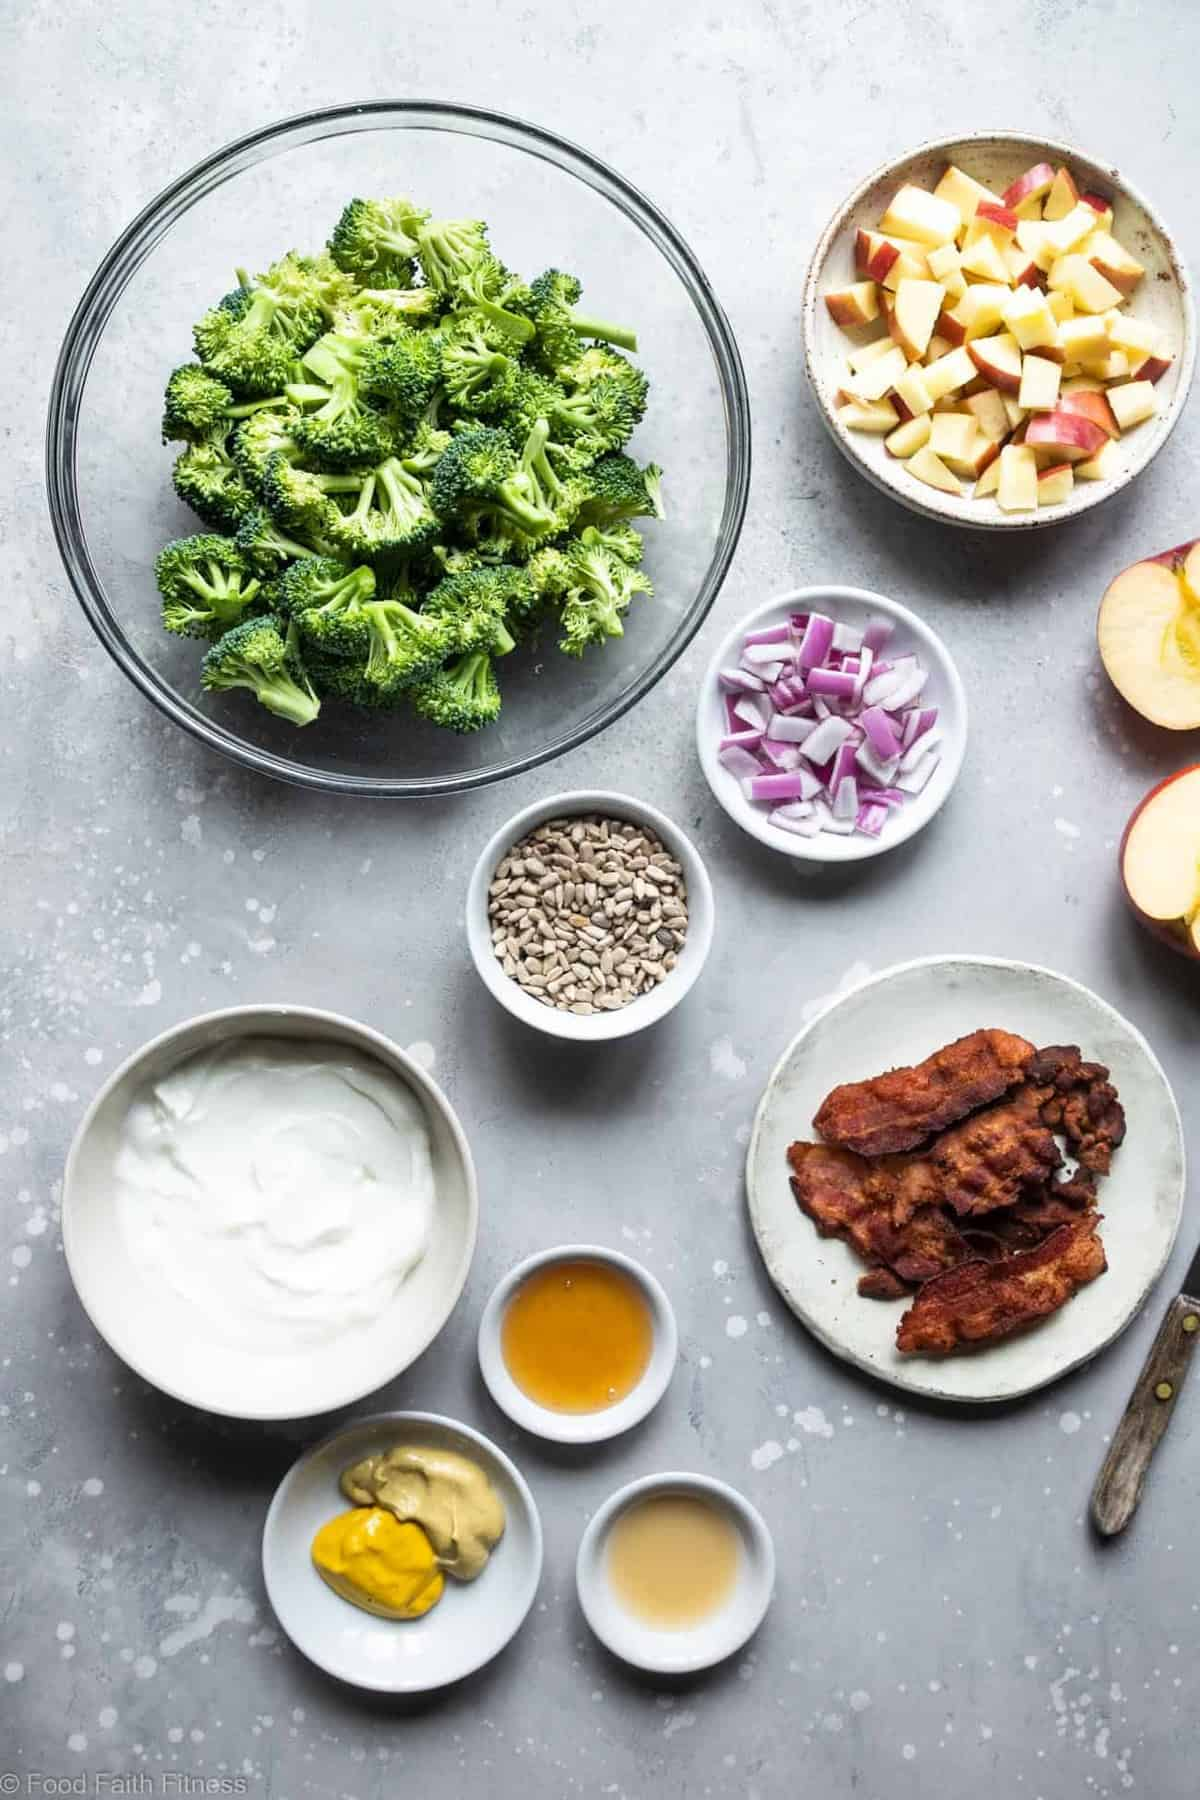 Healthy Broccoli Apple Salad with Greek Yogurt  - This broccoli and apple salad is an easy, gluten free and healthy side dish that even kids will like! It's protein packed and makes great leftovers! | #Foodfaithfitness |